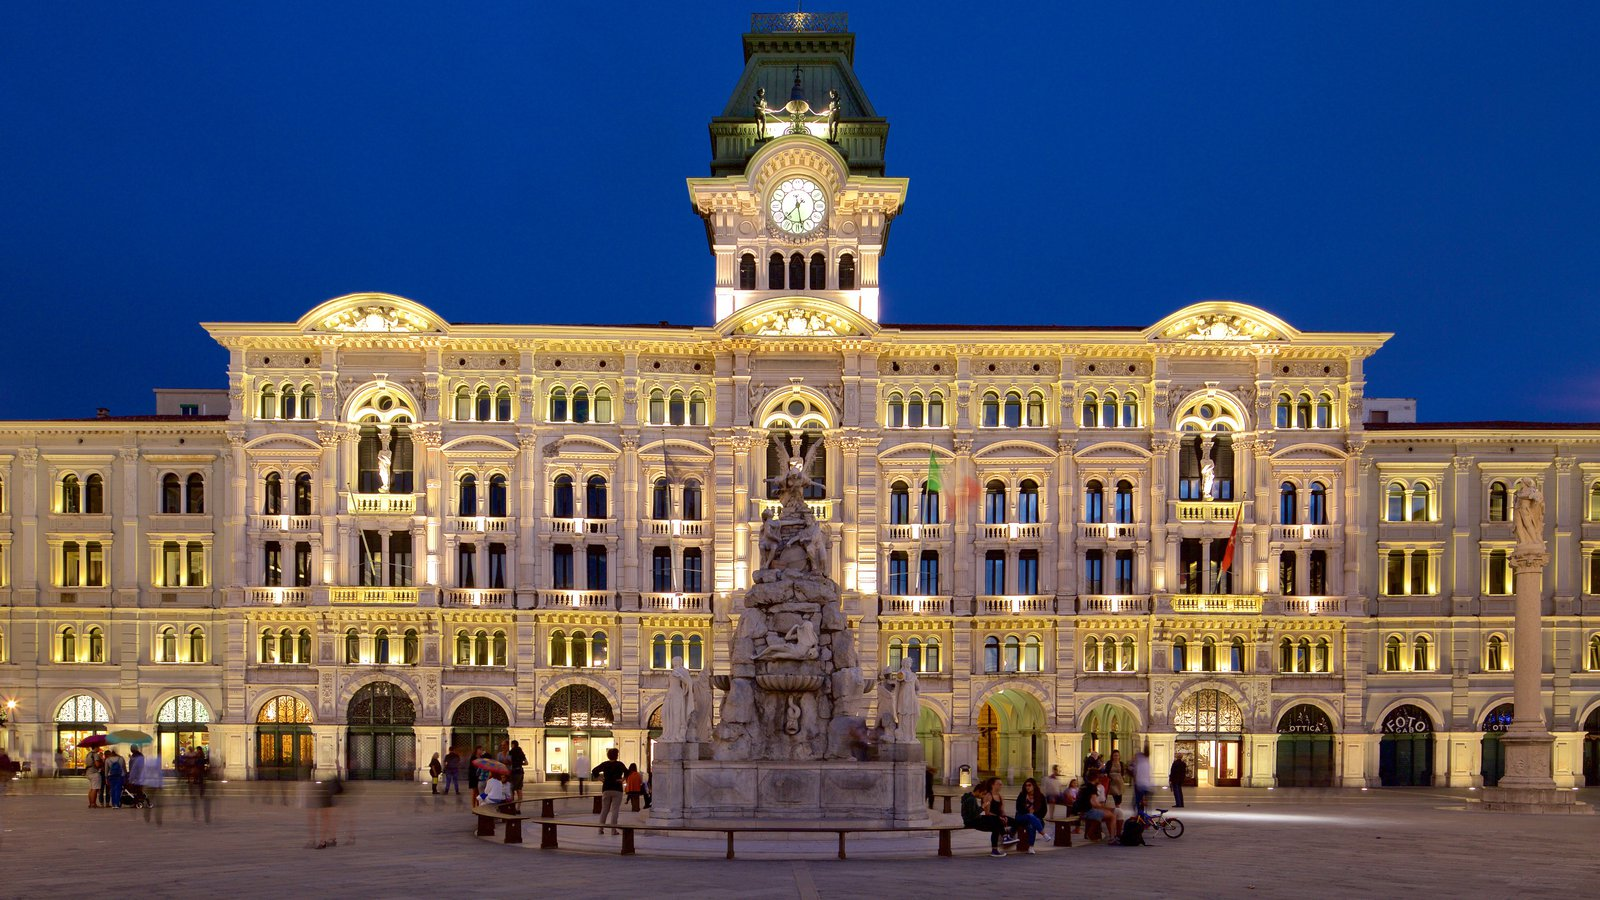 Palazzo del Municipio showing a square or plaza, night scenes and heritage architecture